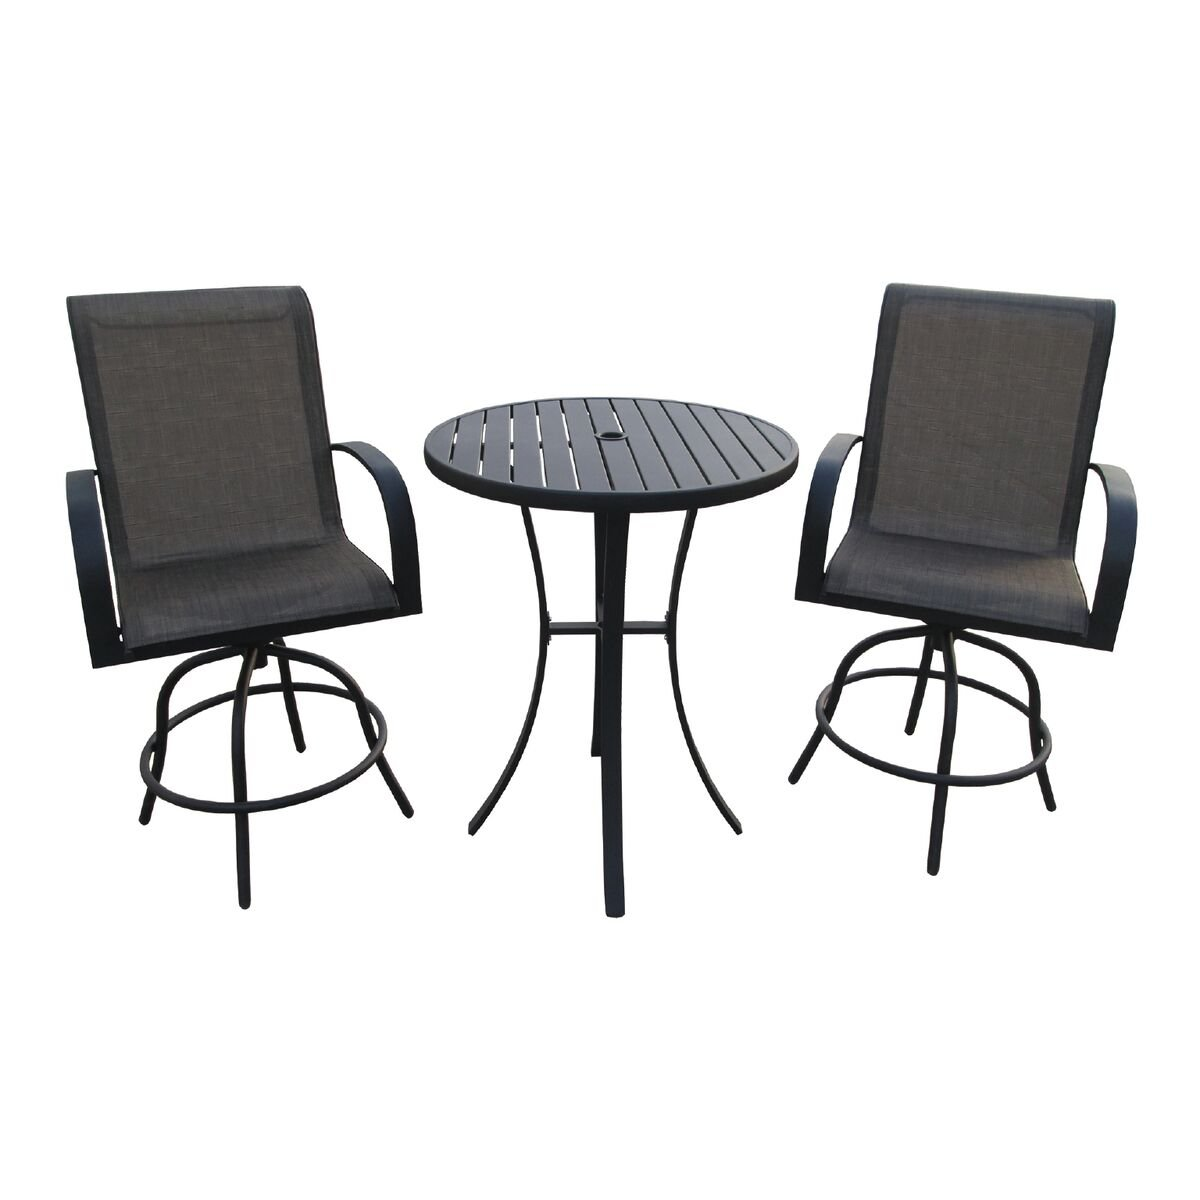 Amazon com backyard expressions 913018 3 piece bar height swivel chair set with metal slat table brown garden outdoor